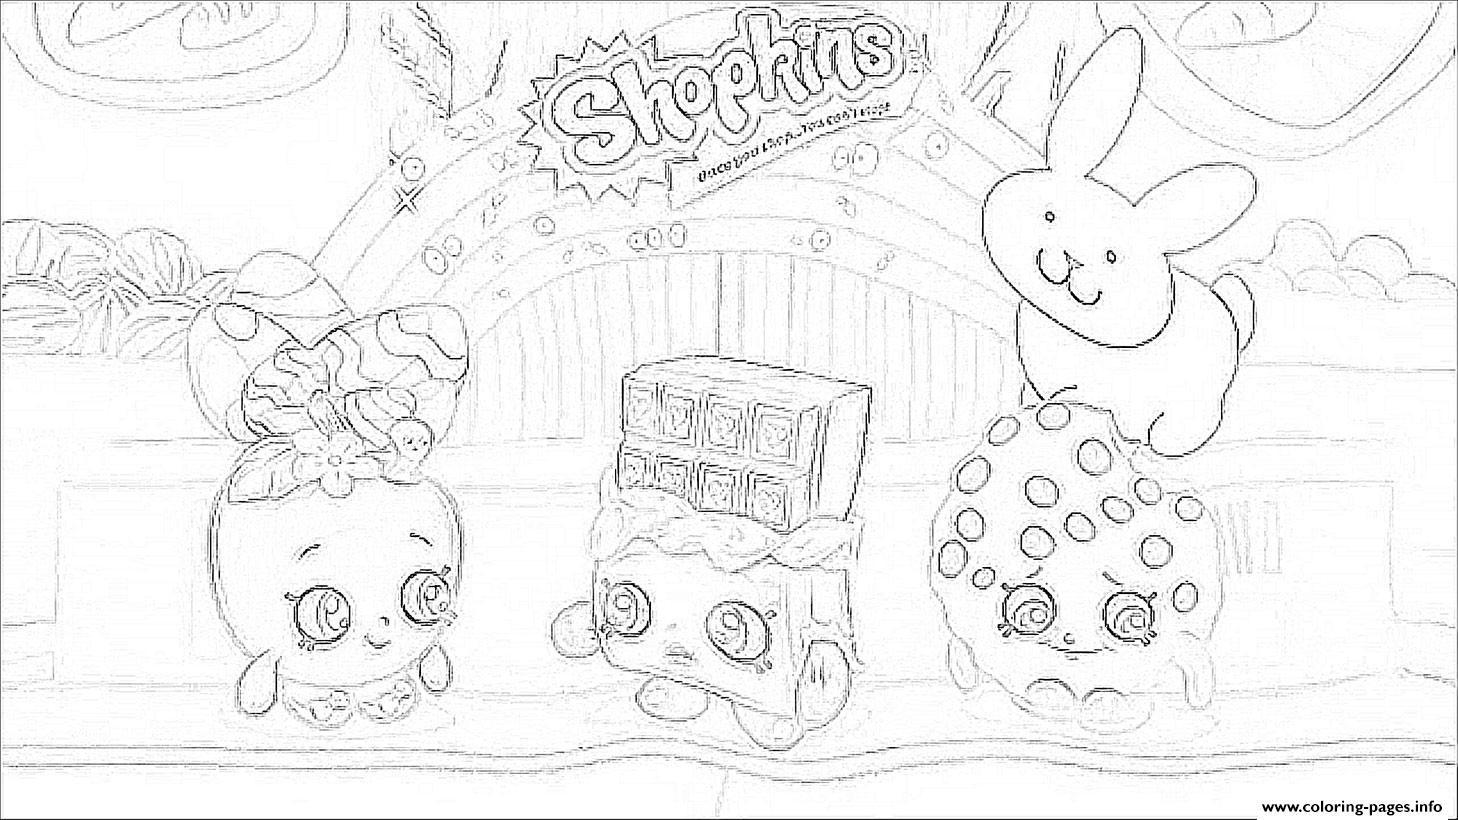 Hopkins Coloring Pages Print Baseball Casper Cap Shopkins Season 3 Printable And Book